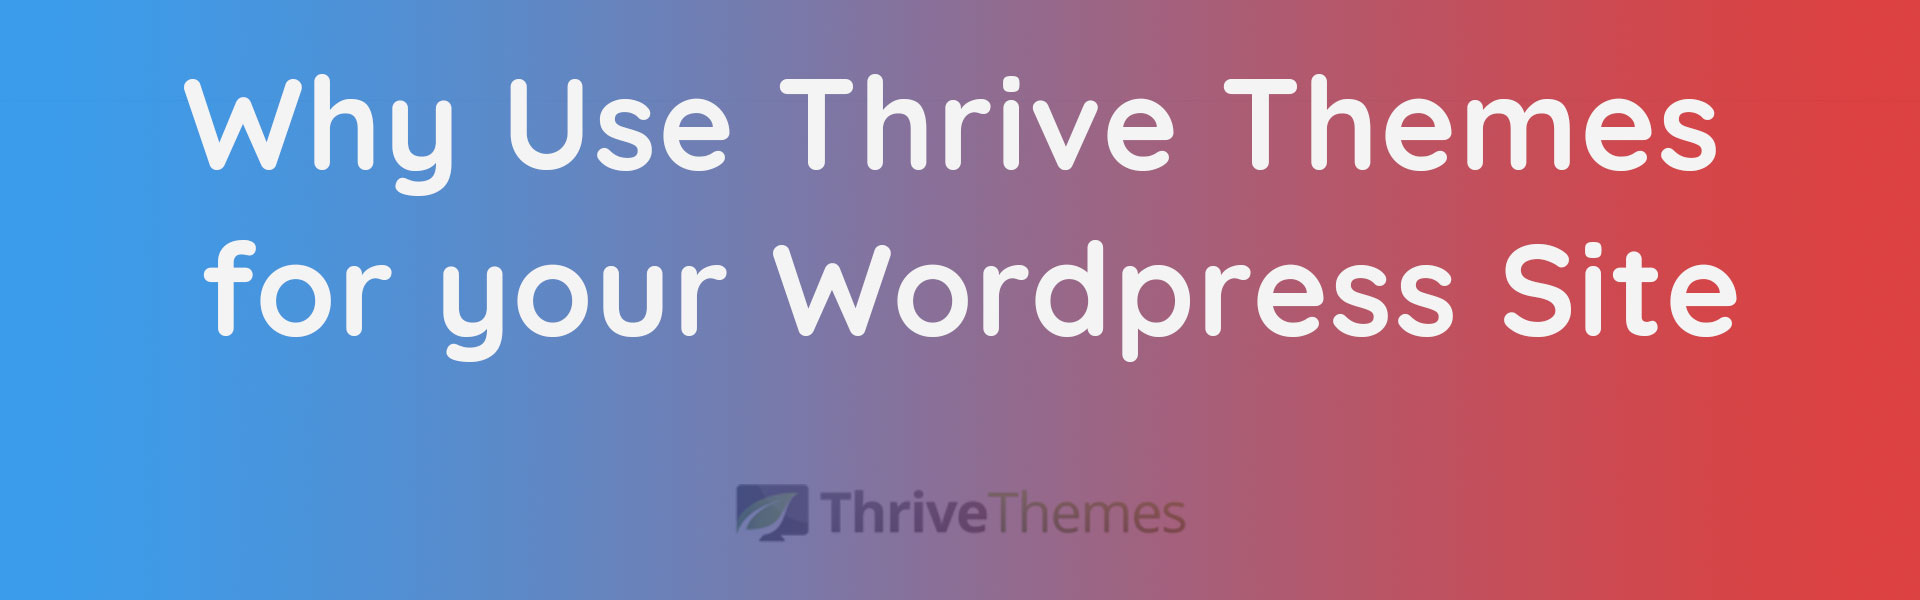 Fake Vs Real Thrive Themes WordPress Themes